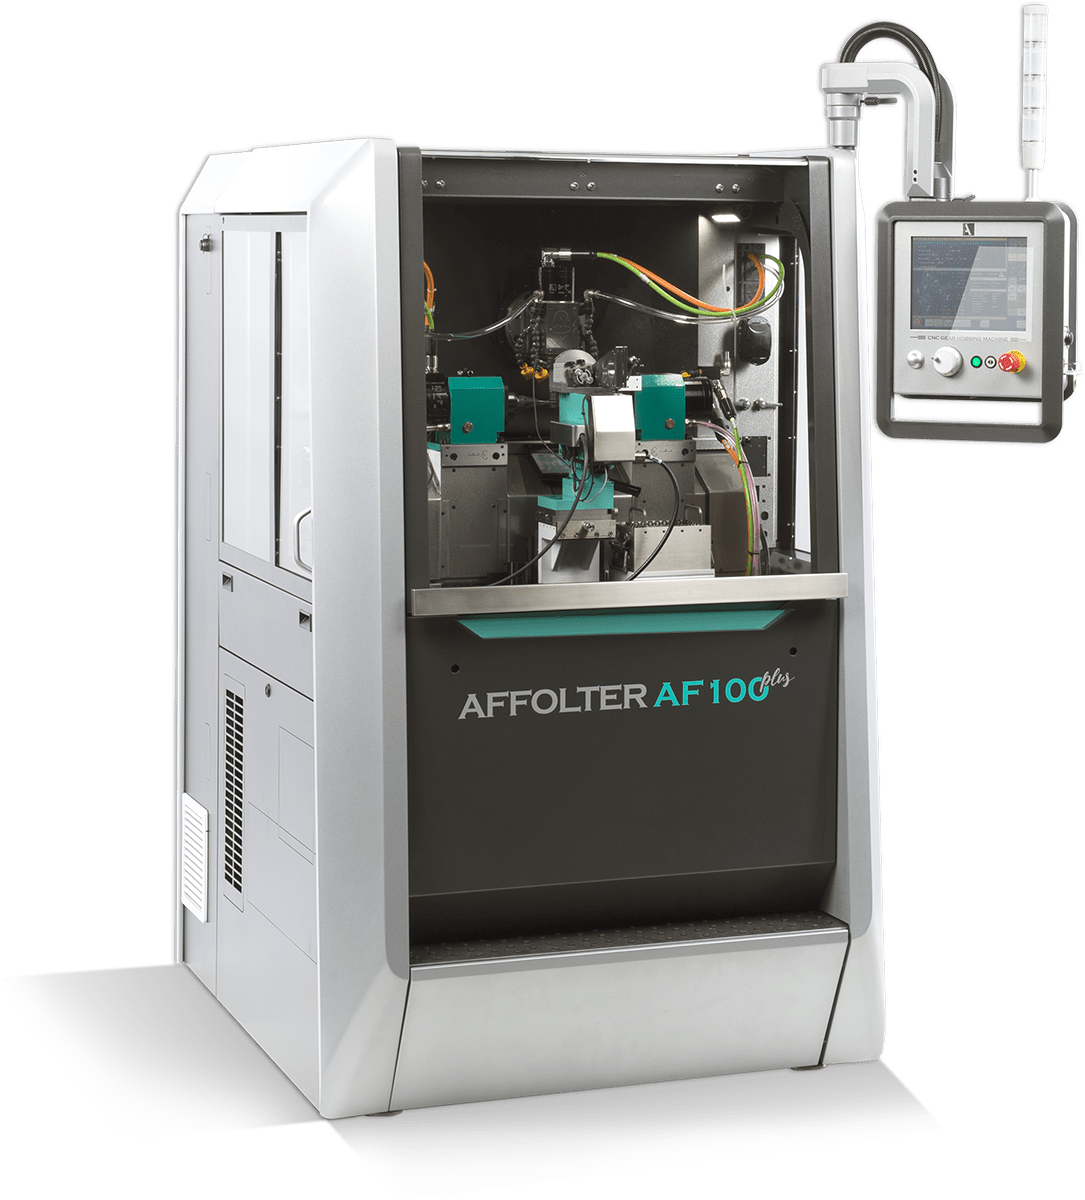 affolter-af100-plus-cnc-machine-a-tailler-engrenage-taillage-xl